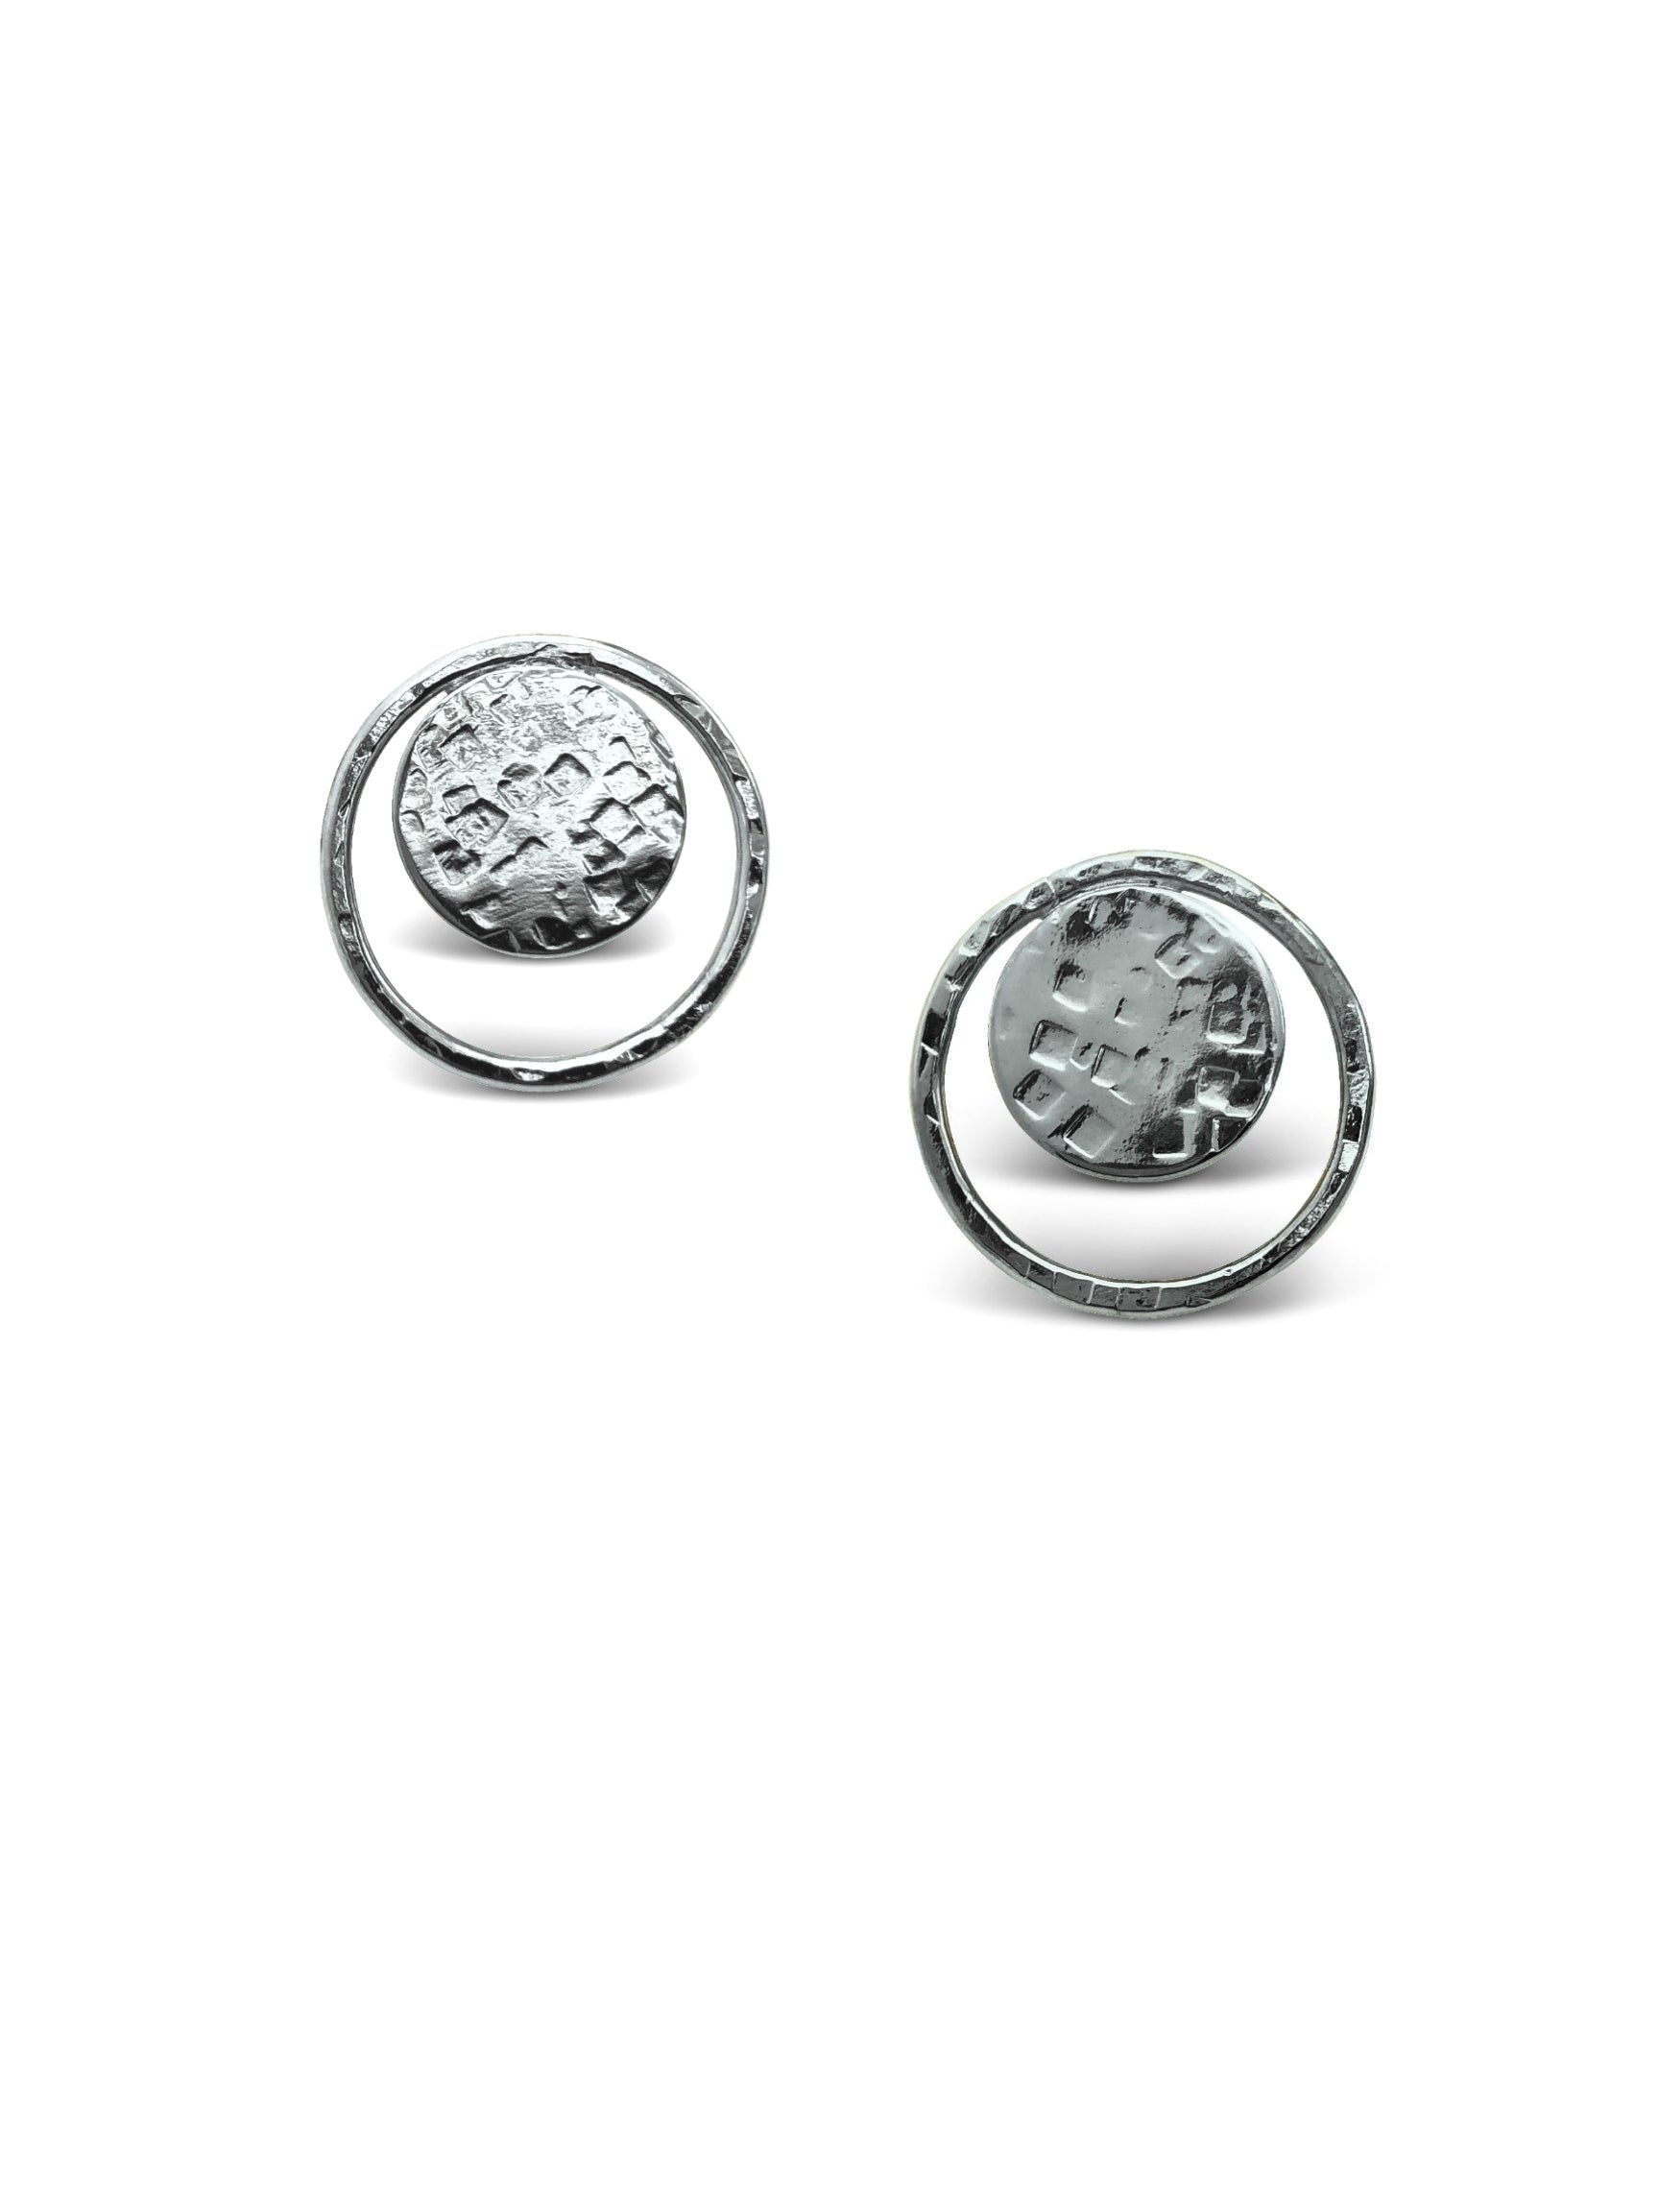 Silver Peacock Eye Clipon Earrings-Earrings-JAREDJAMIN Jewelry Online-JARED JAMIN